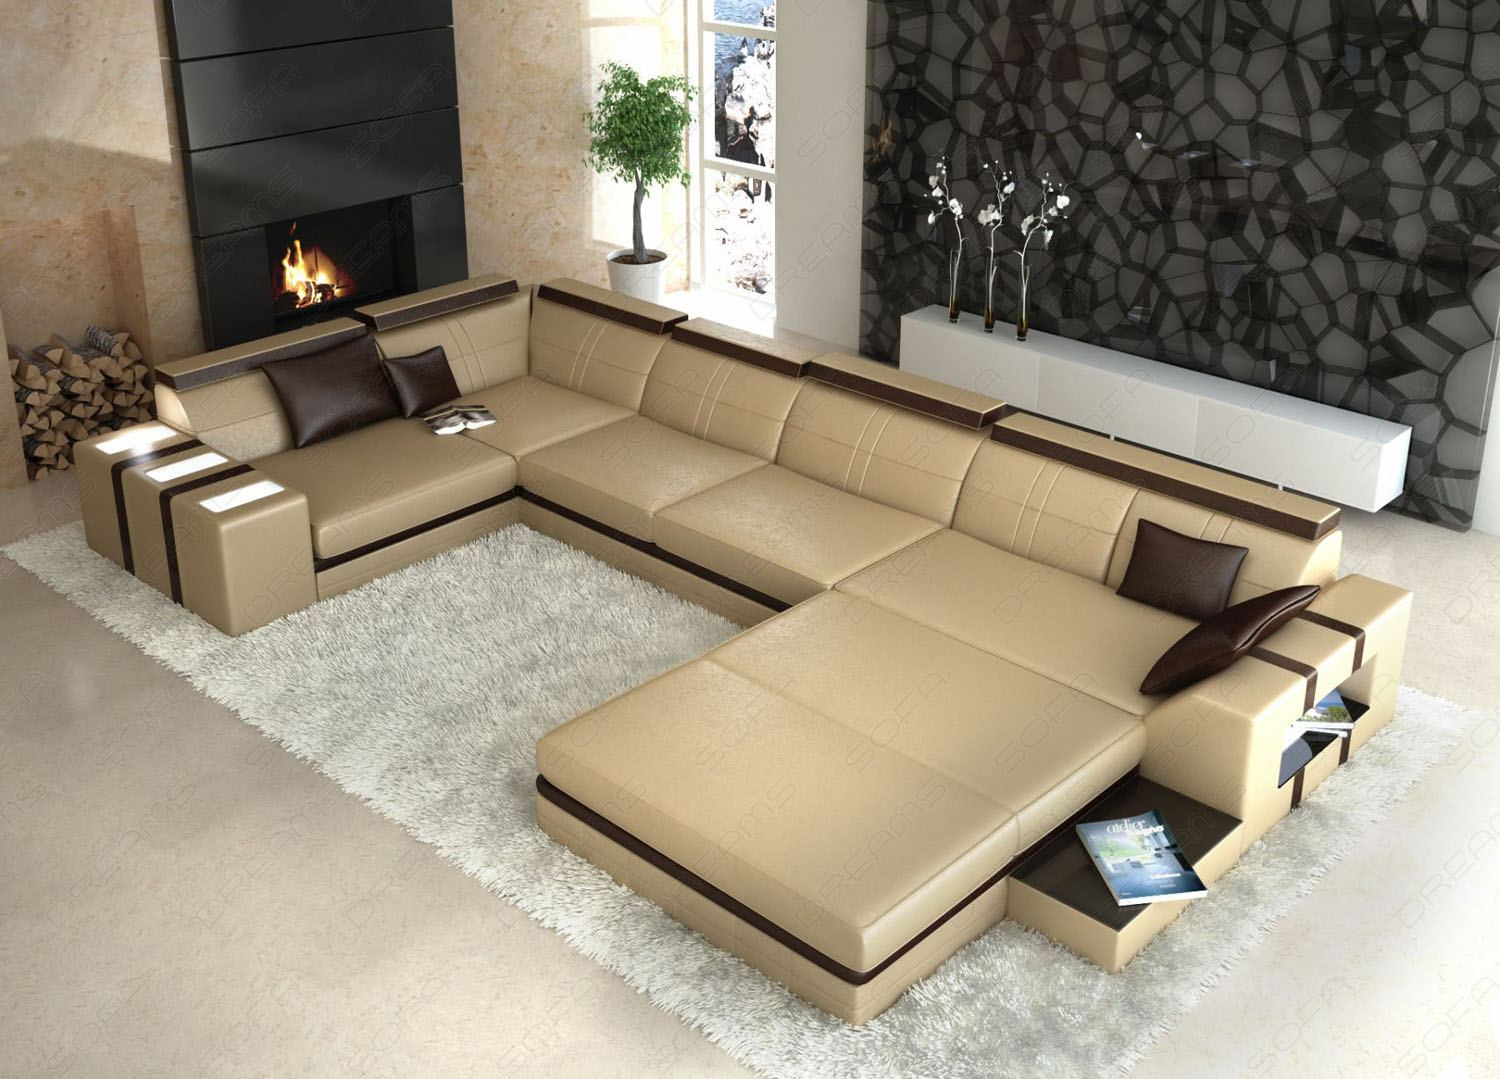 couch braun beige best 25 couch ideas on pinterest xxl sofa bei roller carprola for mega sofa. Black Bedroom Furniture Sets. Home Design Ideas